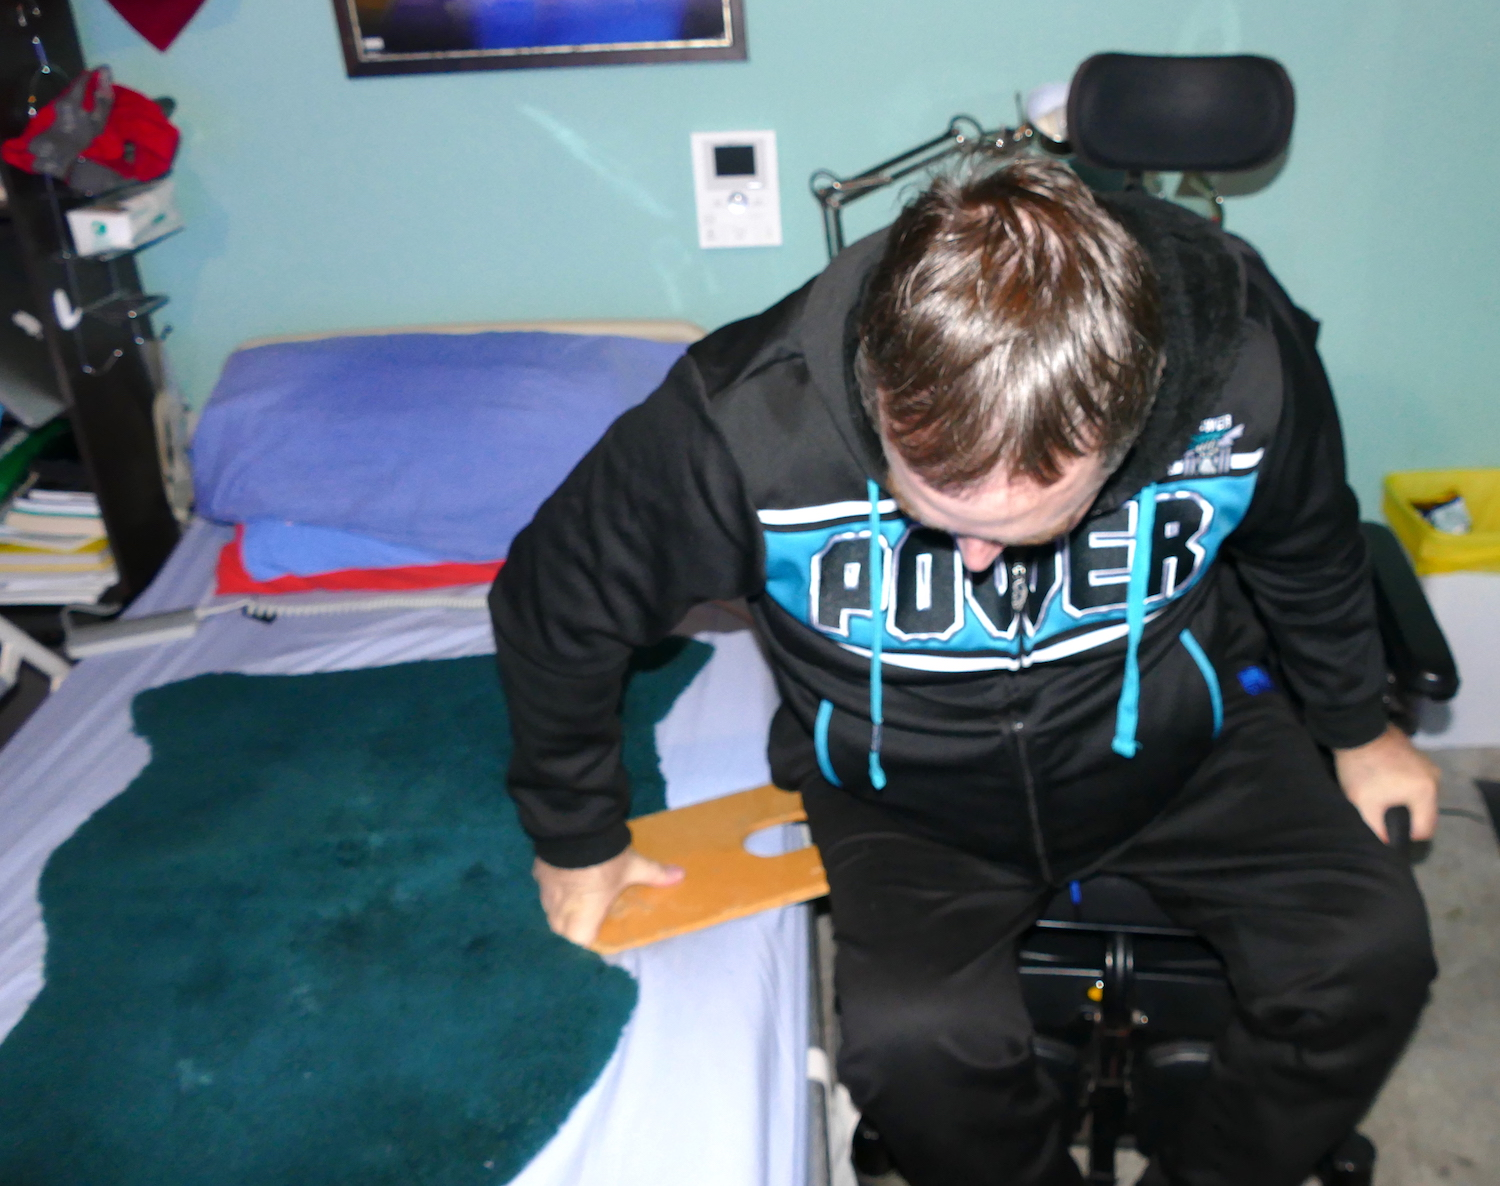 john getting onto bed from wheelchair usiing a slideboard - sci sleeping tips